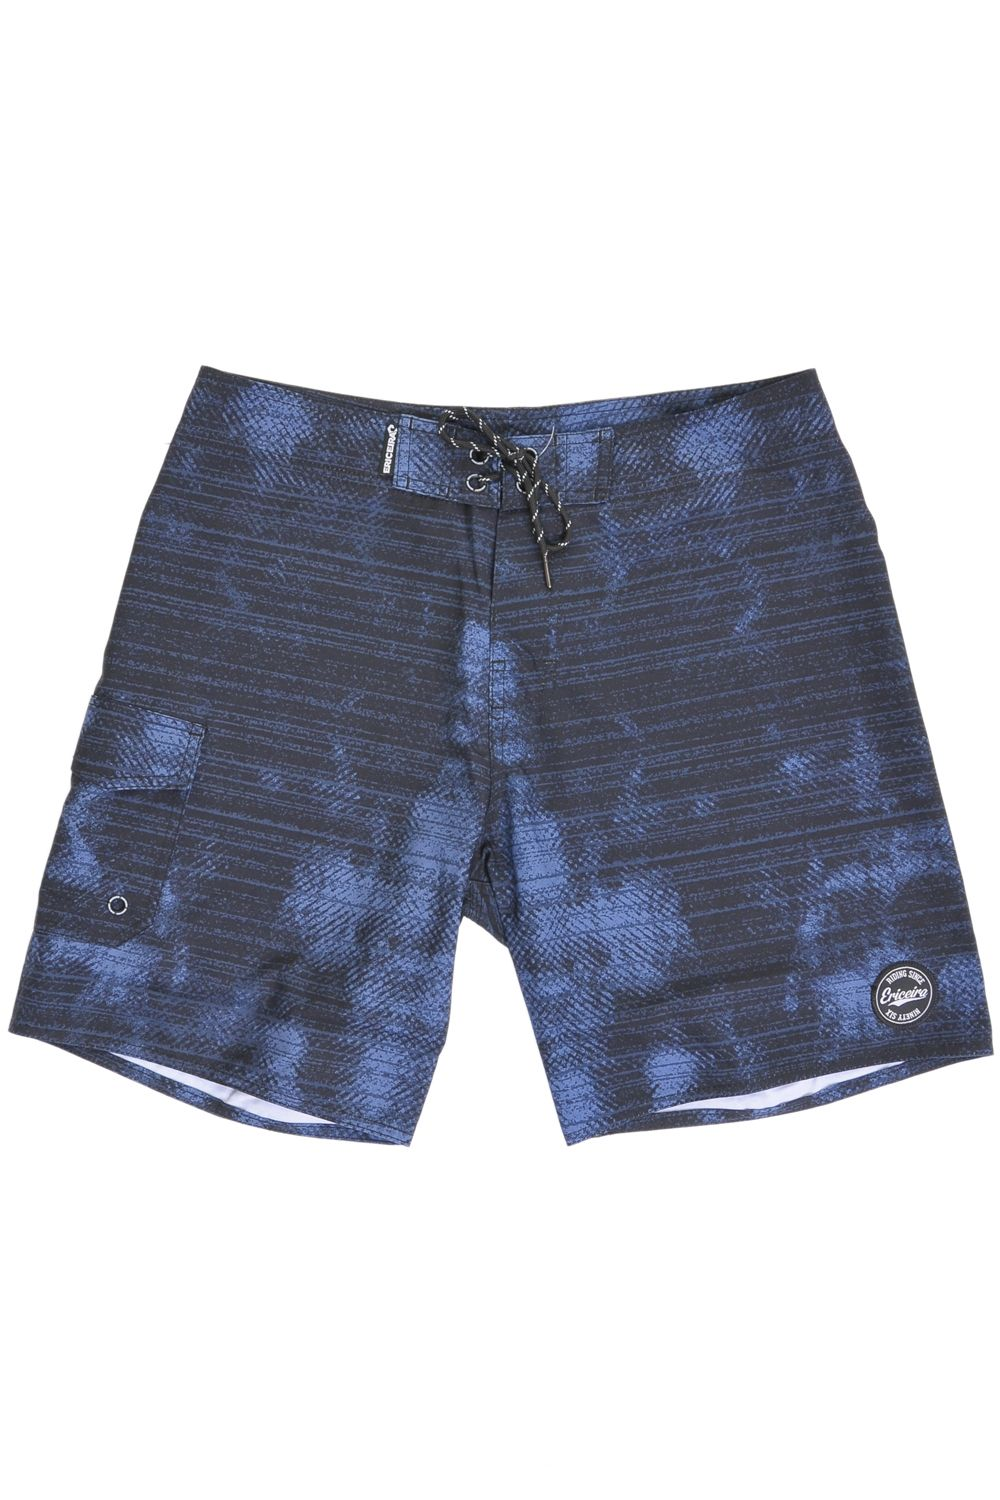 Boardshorts Ericeira Surf Skate BOMBING Charcoal